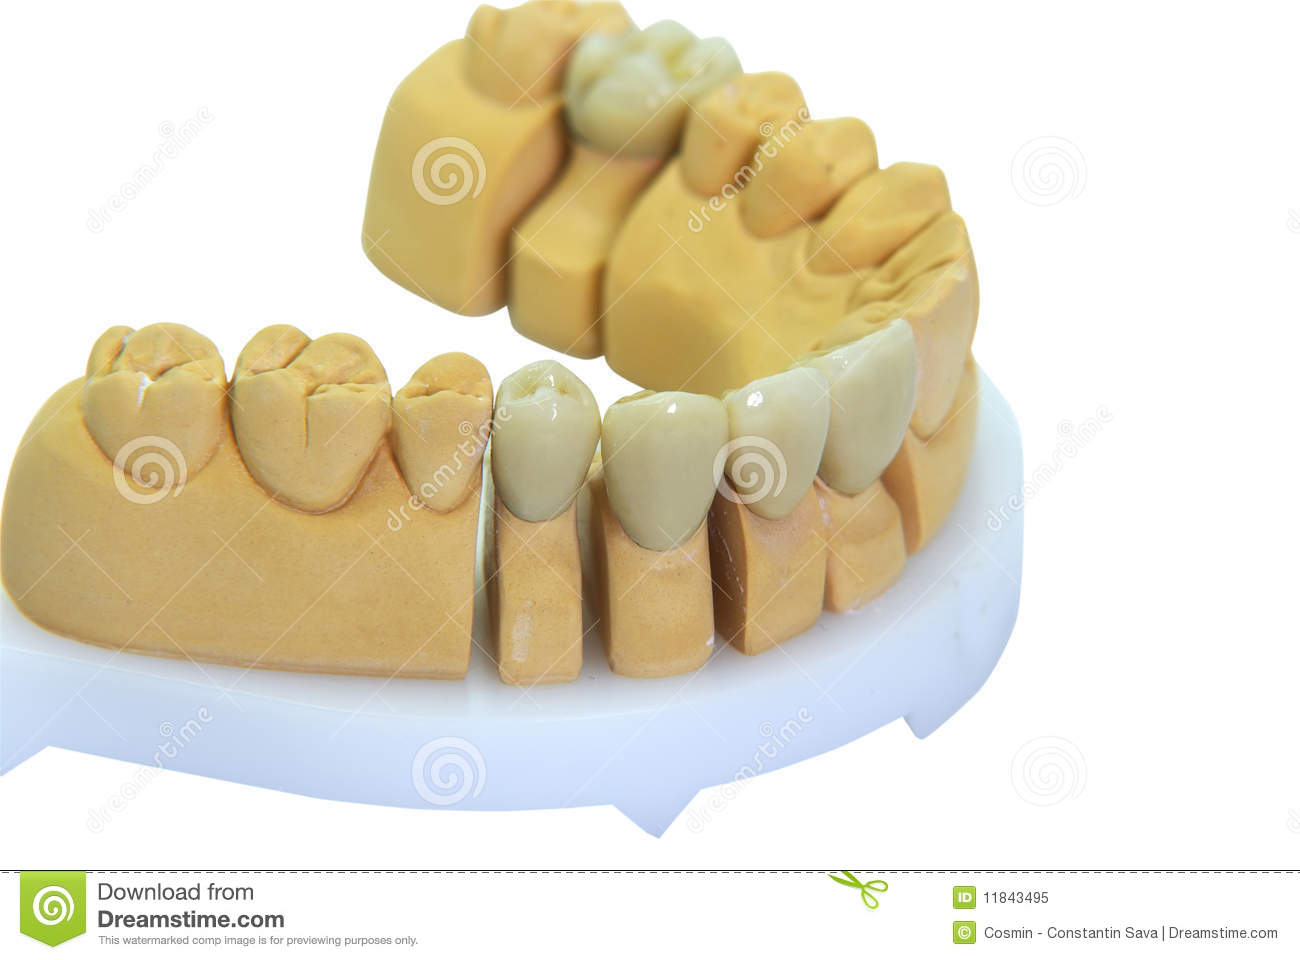 Dents En Porcelaine Dentiers Avec Des Dents De Porcelaine Illustration De Vecteur